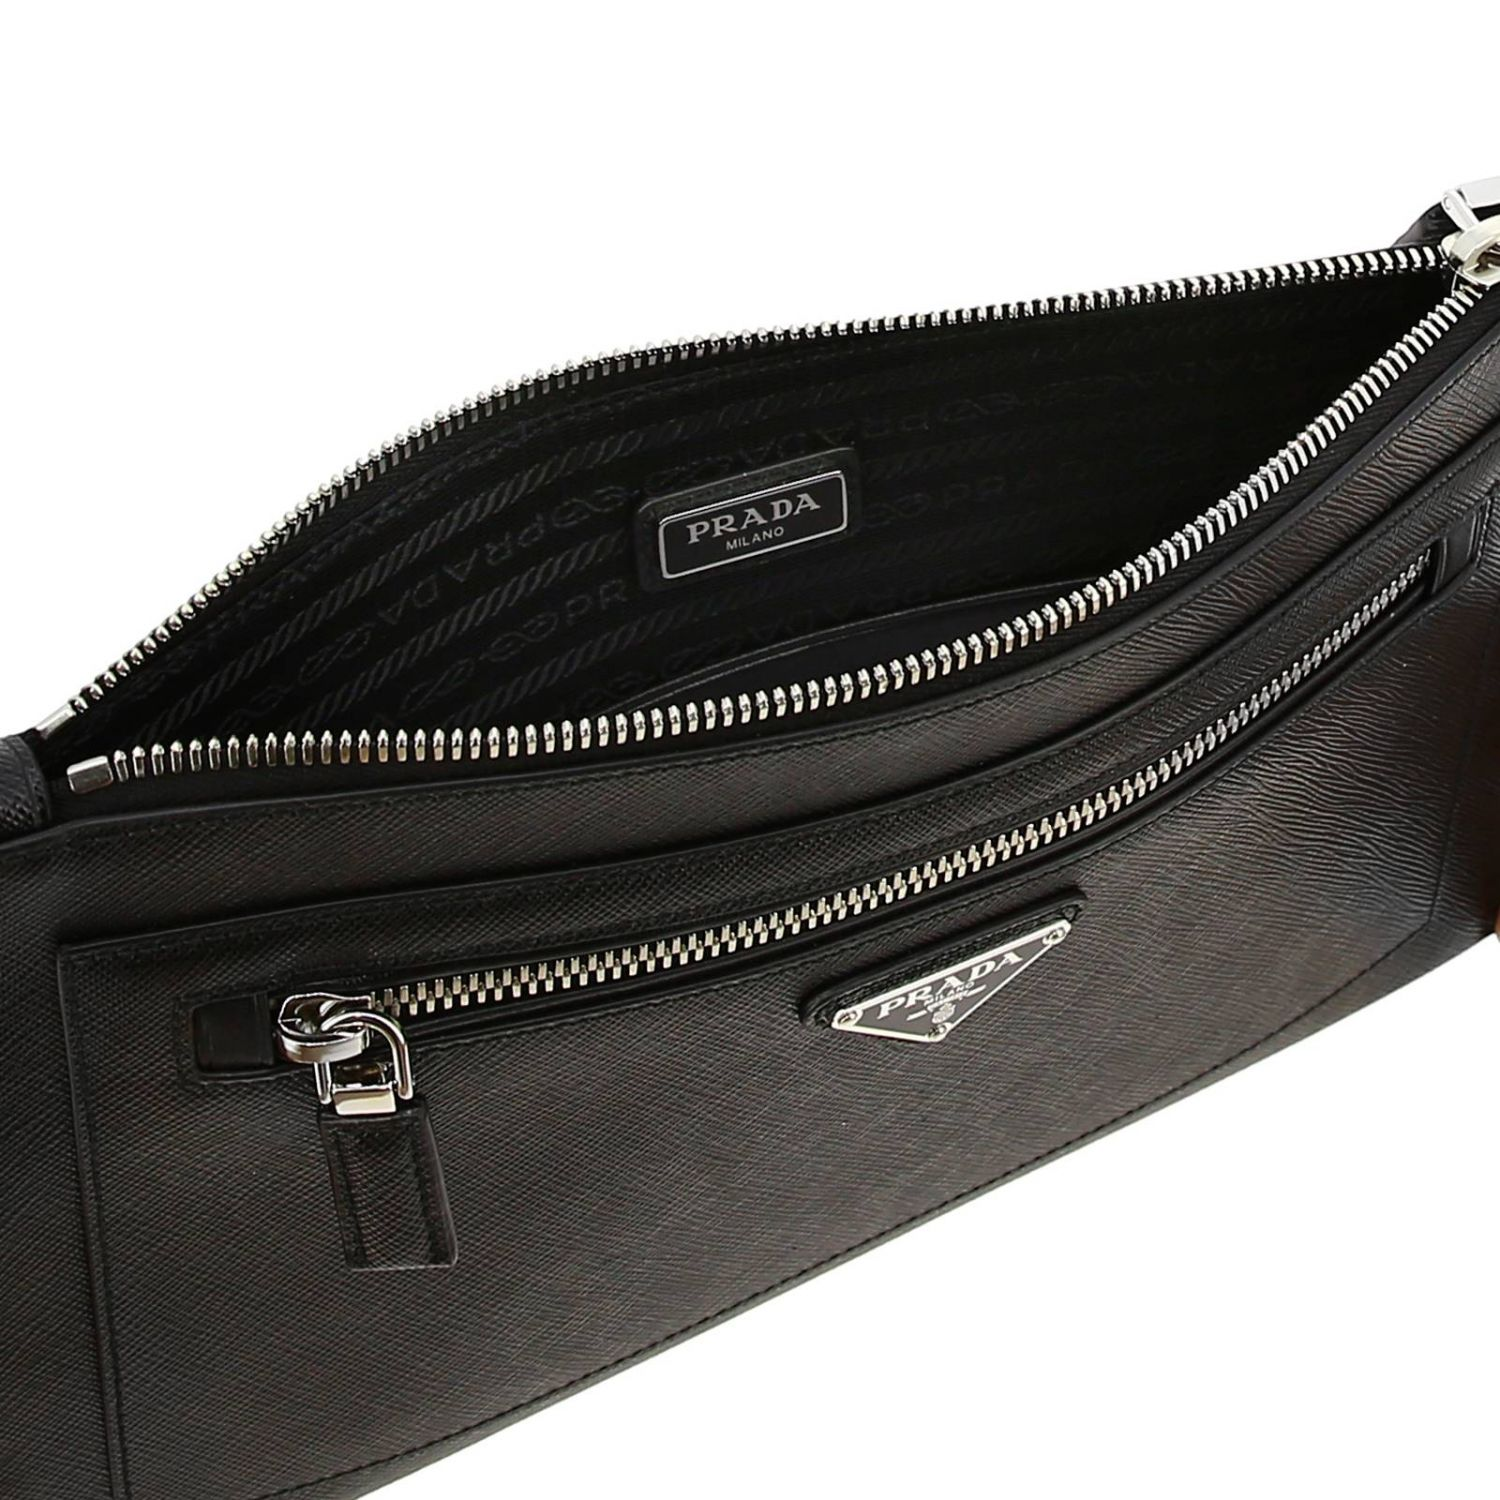 Briefcase Prada: Prada saffiano leather clutch bag full zip with logo black 5